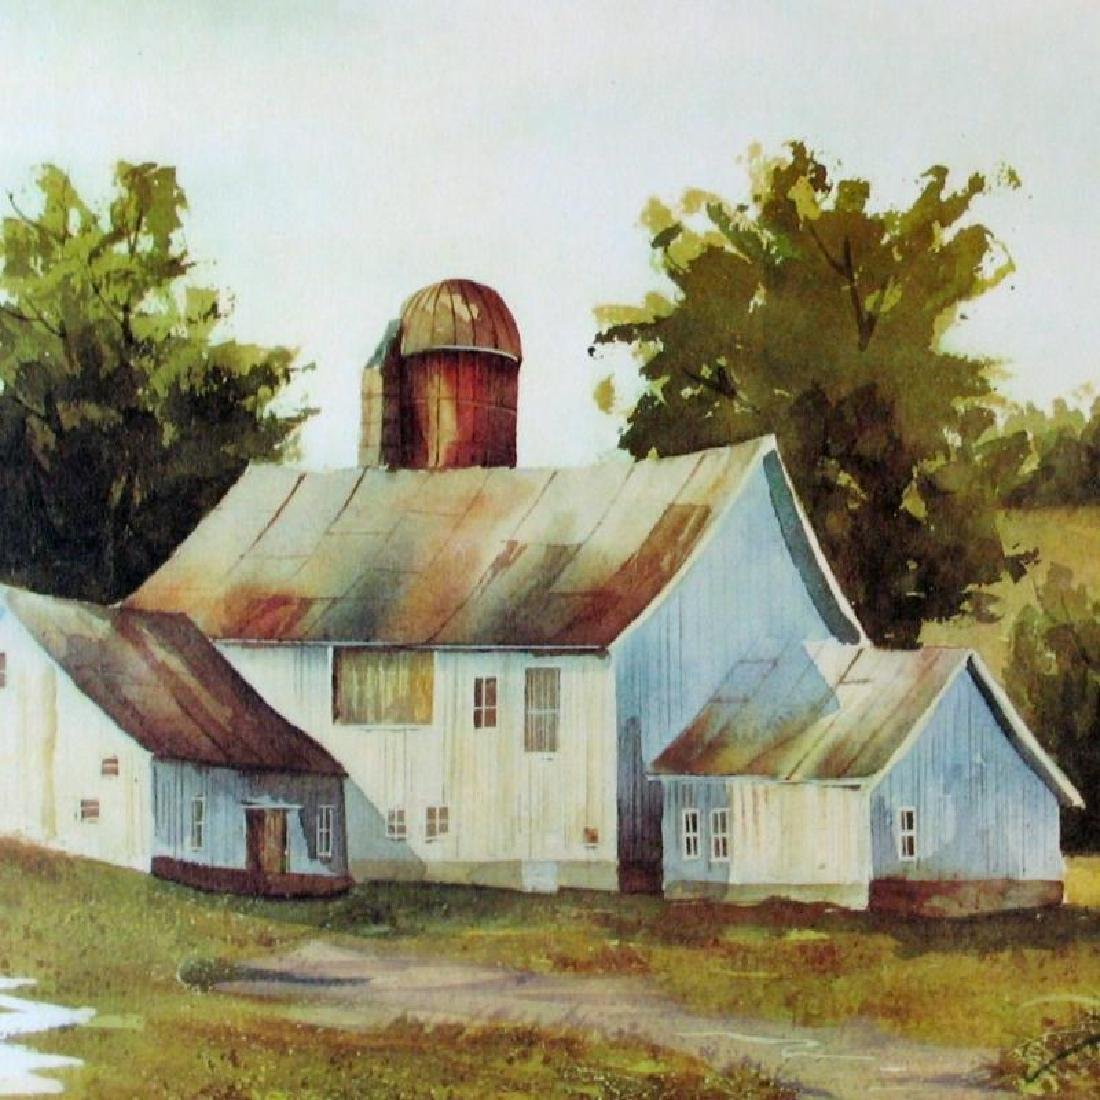 Spring Country Home Landscape Watercolor Style Ltd Ed - 2